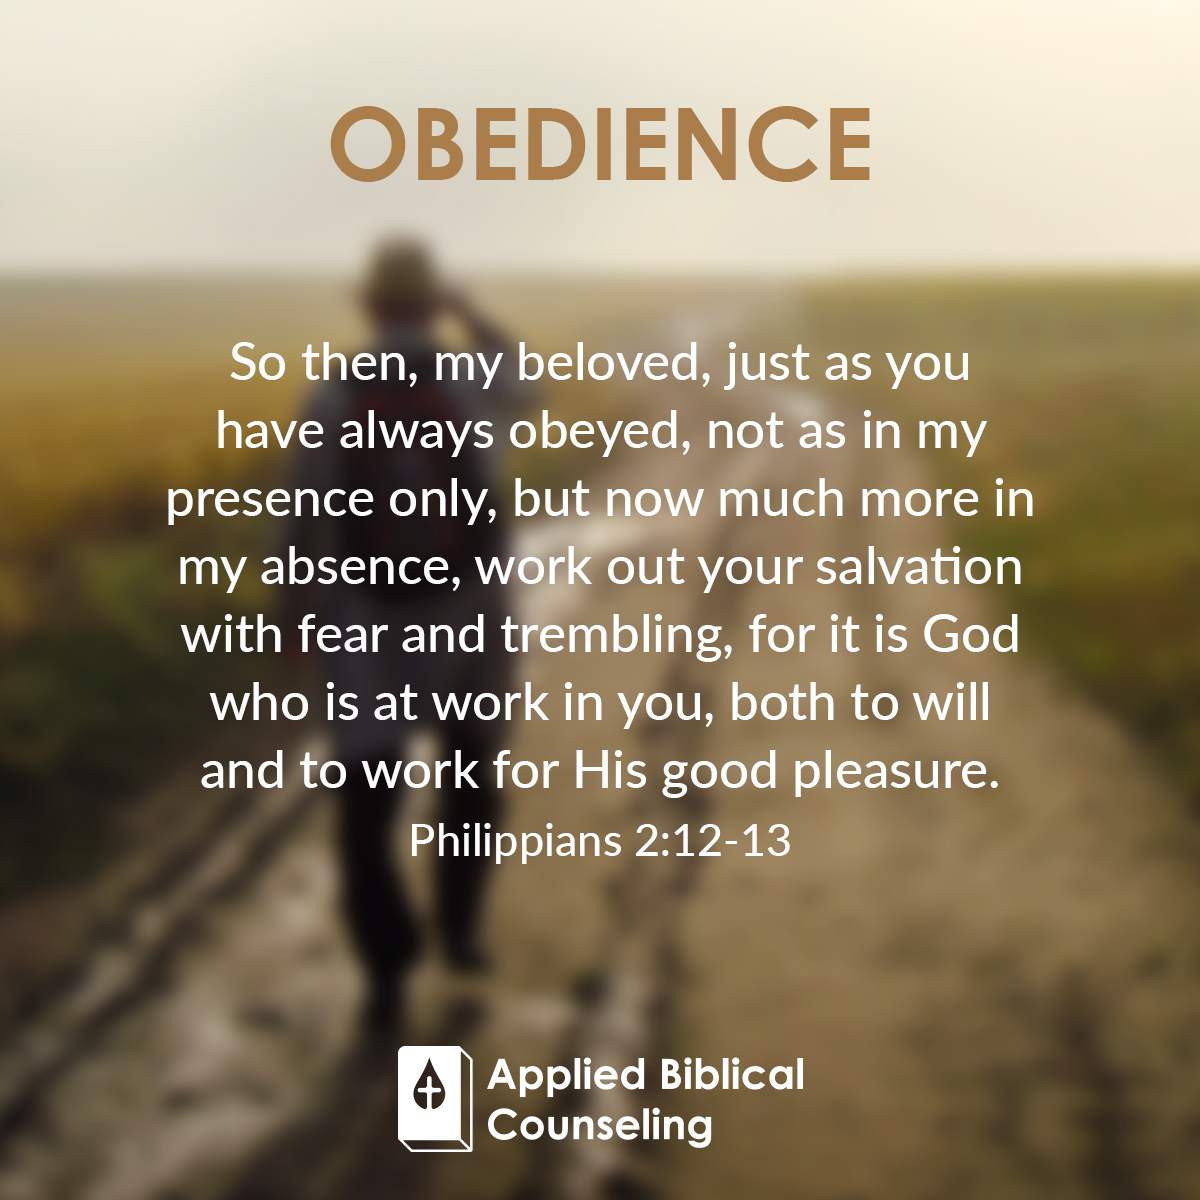 Applied Biblical Counseling Facebook w23 Obedience 4